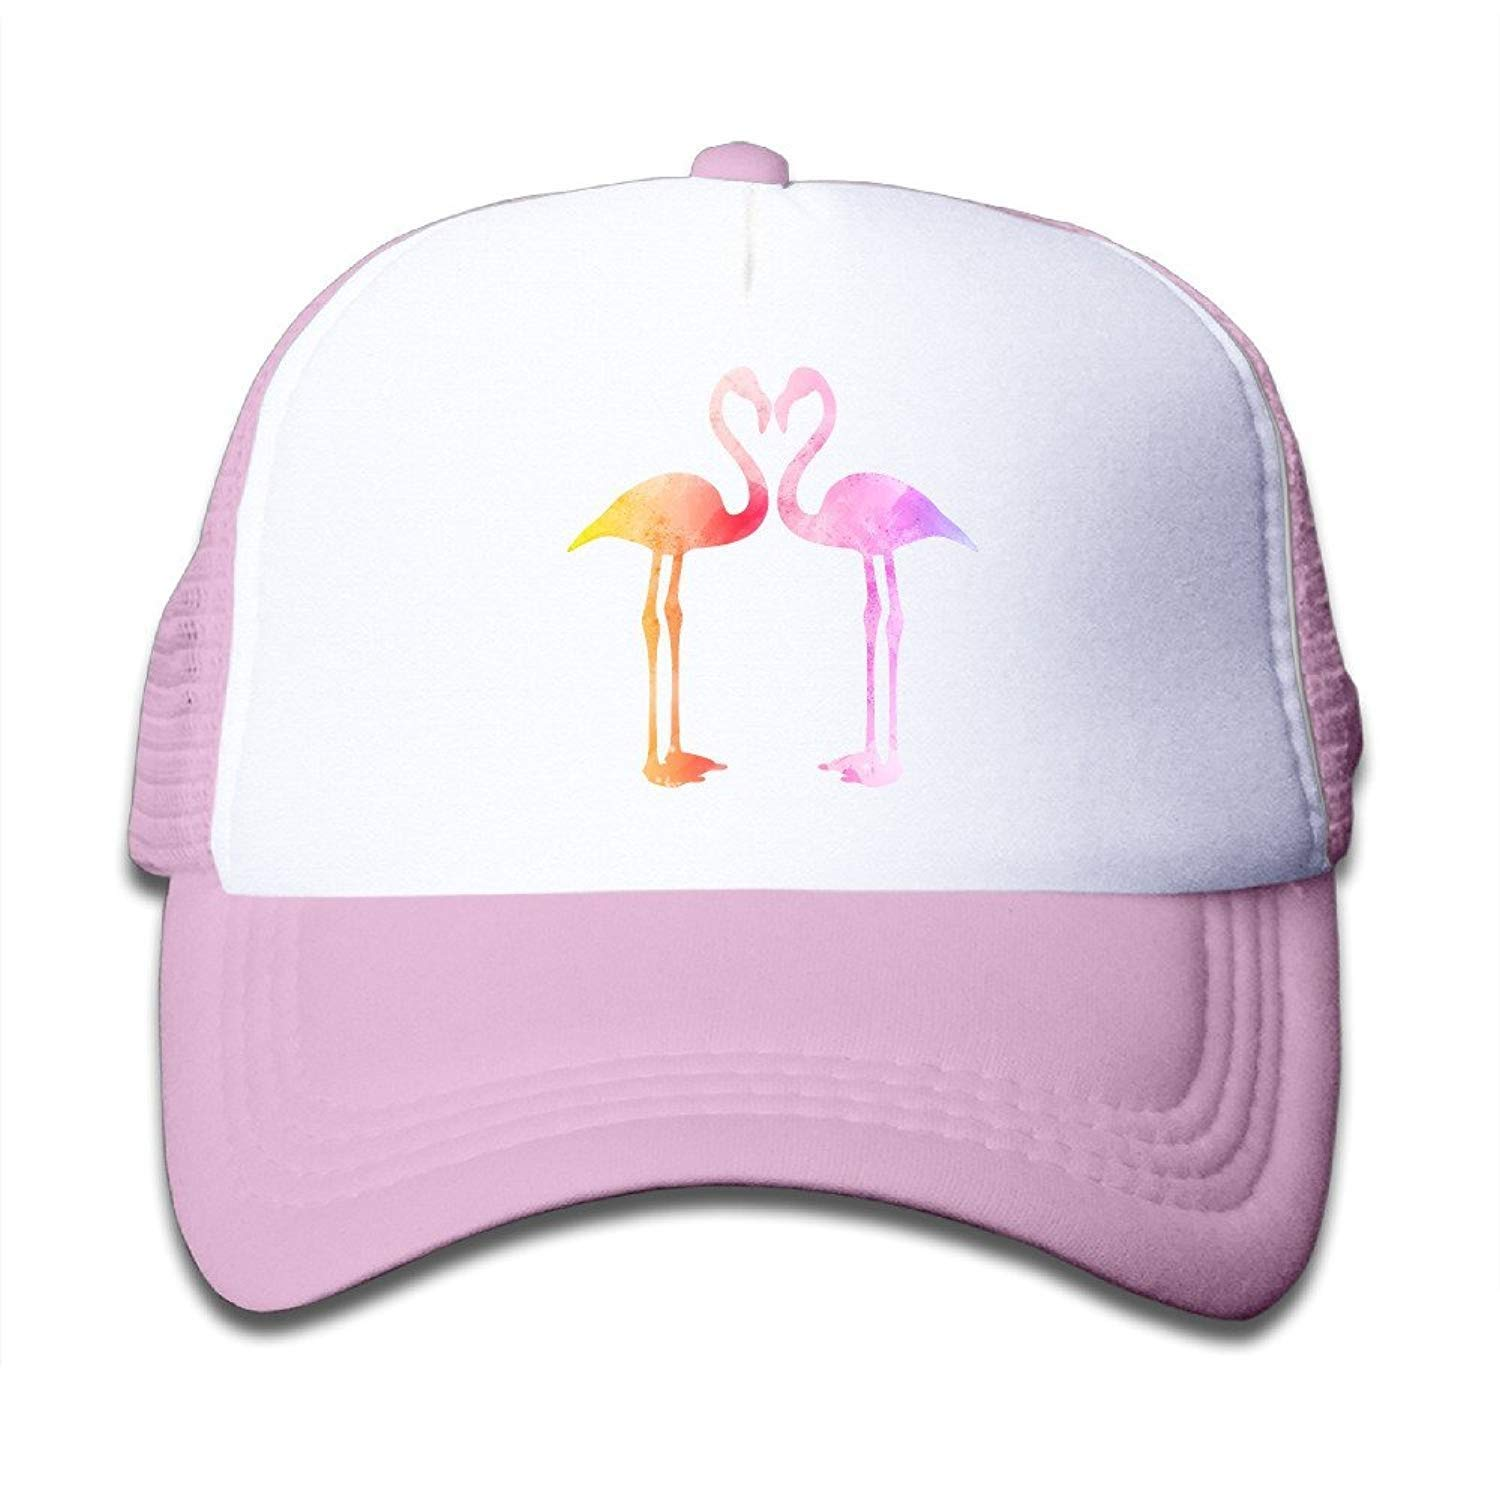 WCMBY Personality Caps Hats Watercolor Flamingo Flamingo Love Boys Girls  Mesh Cap Trucker Caps Hat Adjustable Black  Amazon.co.uk  Sports   Outdoors 865c1526ff4e